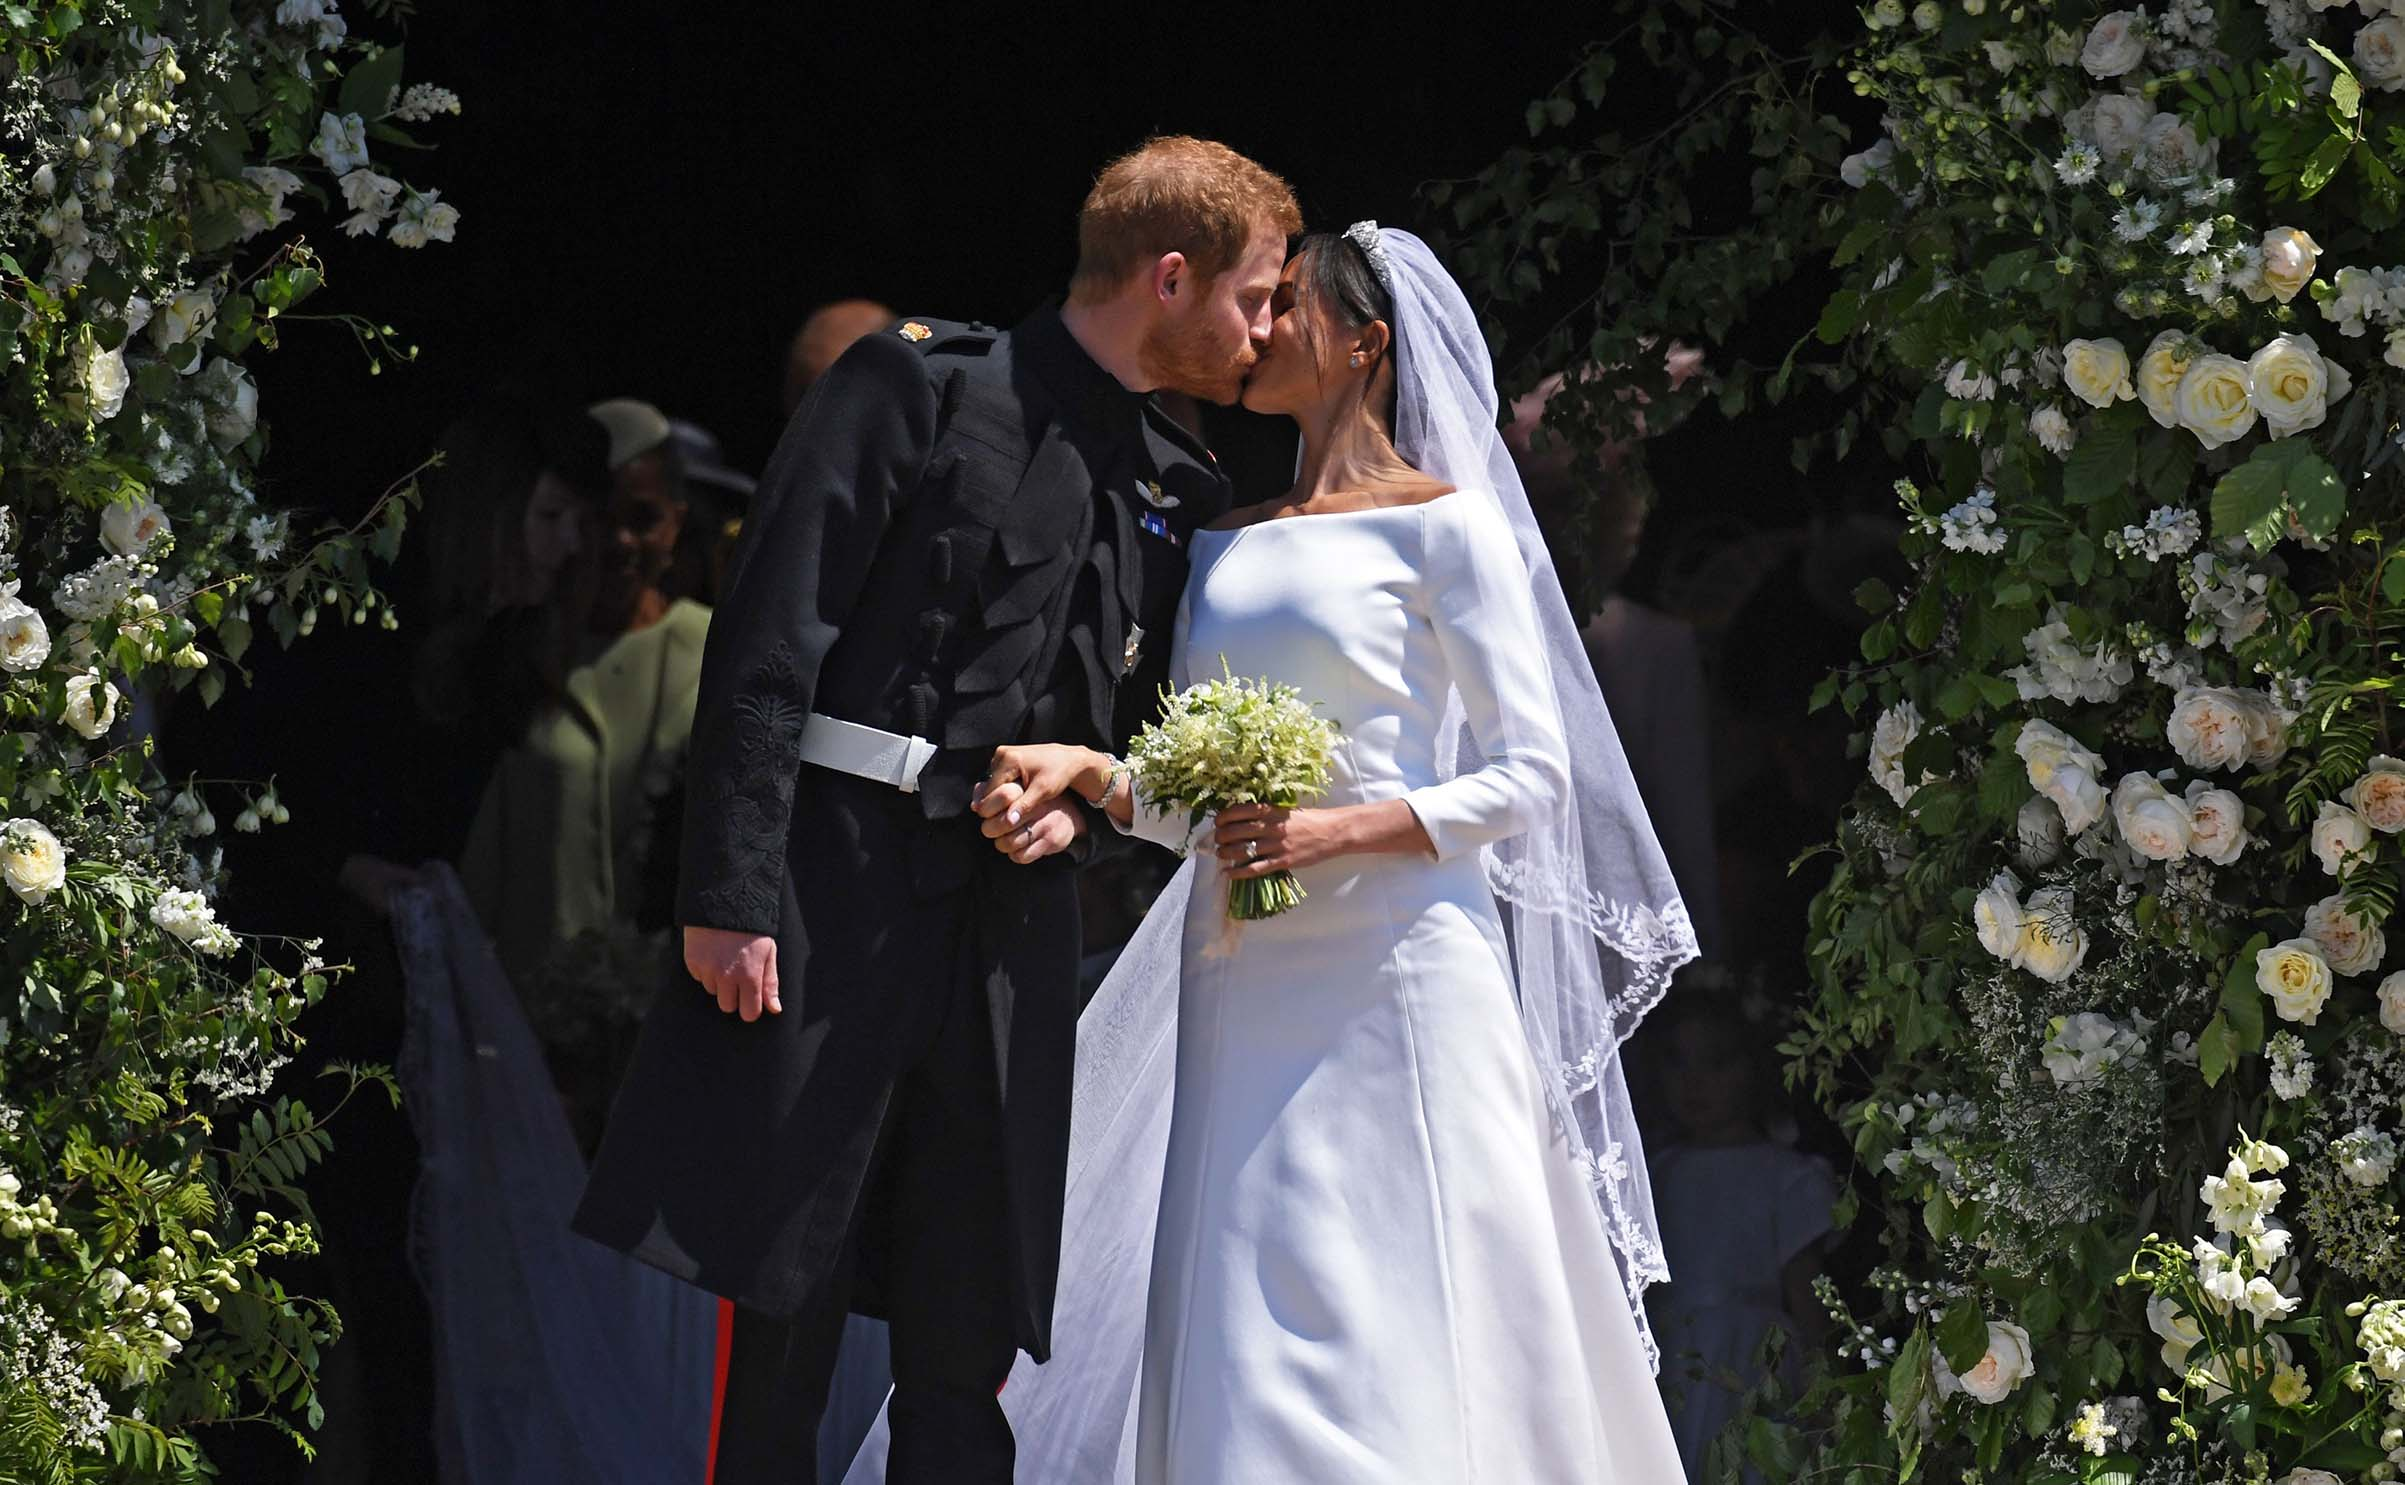 Royal Wedding of Prince Harry and Meghan Markle in Windsor, United Kingdom – 19 May 2018